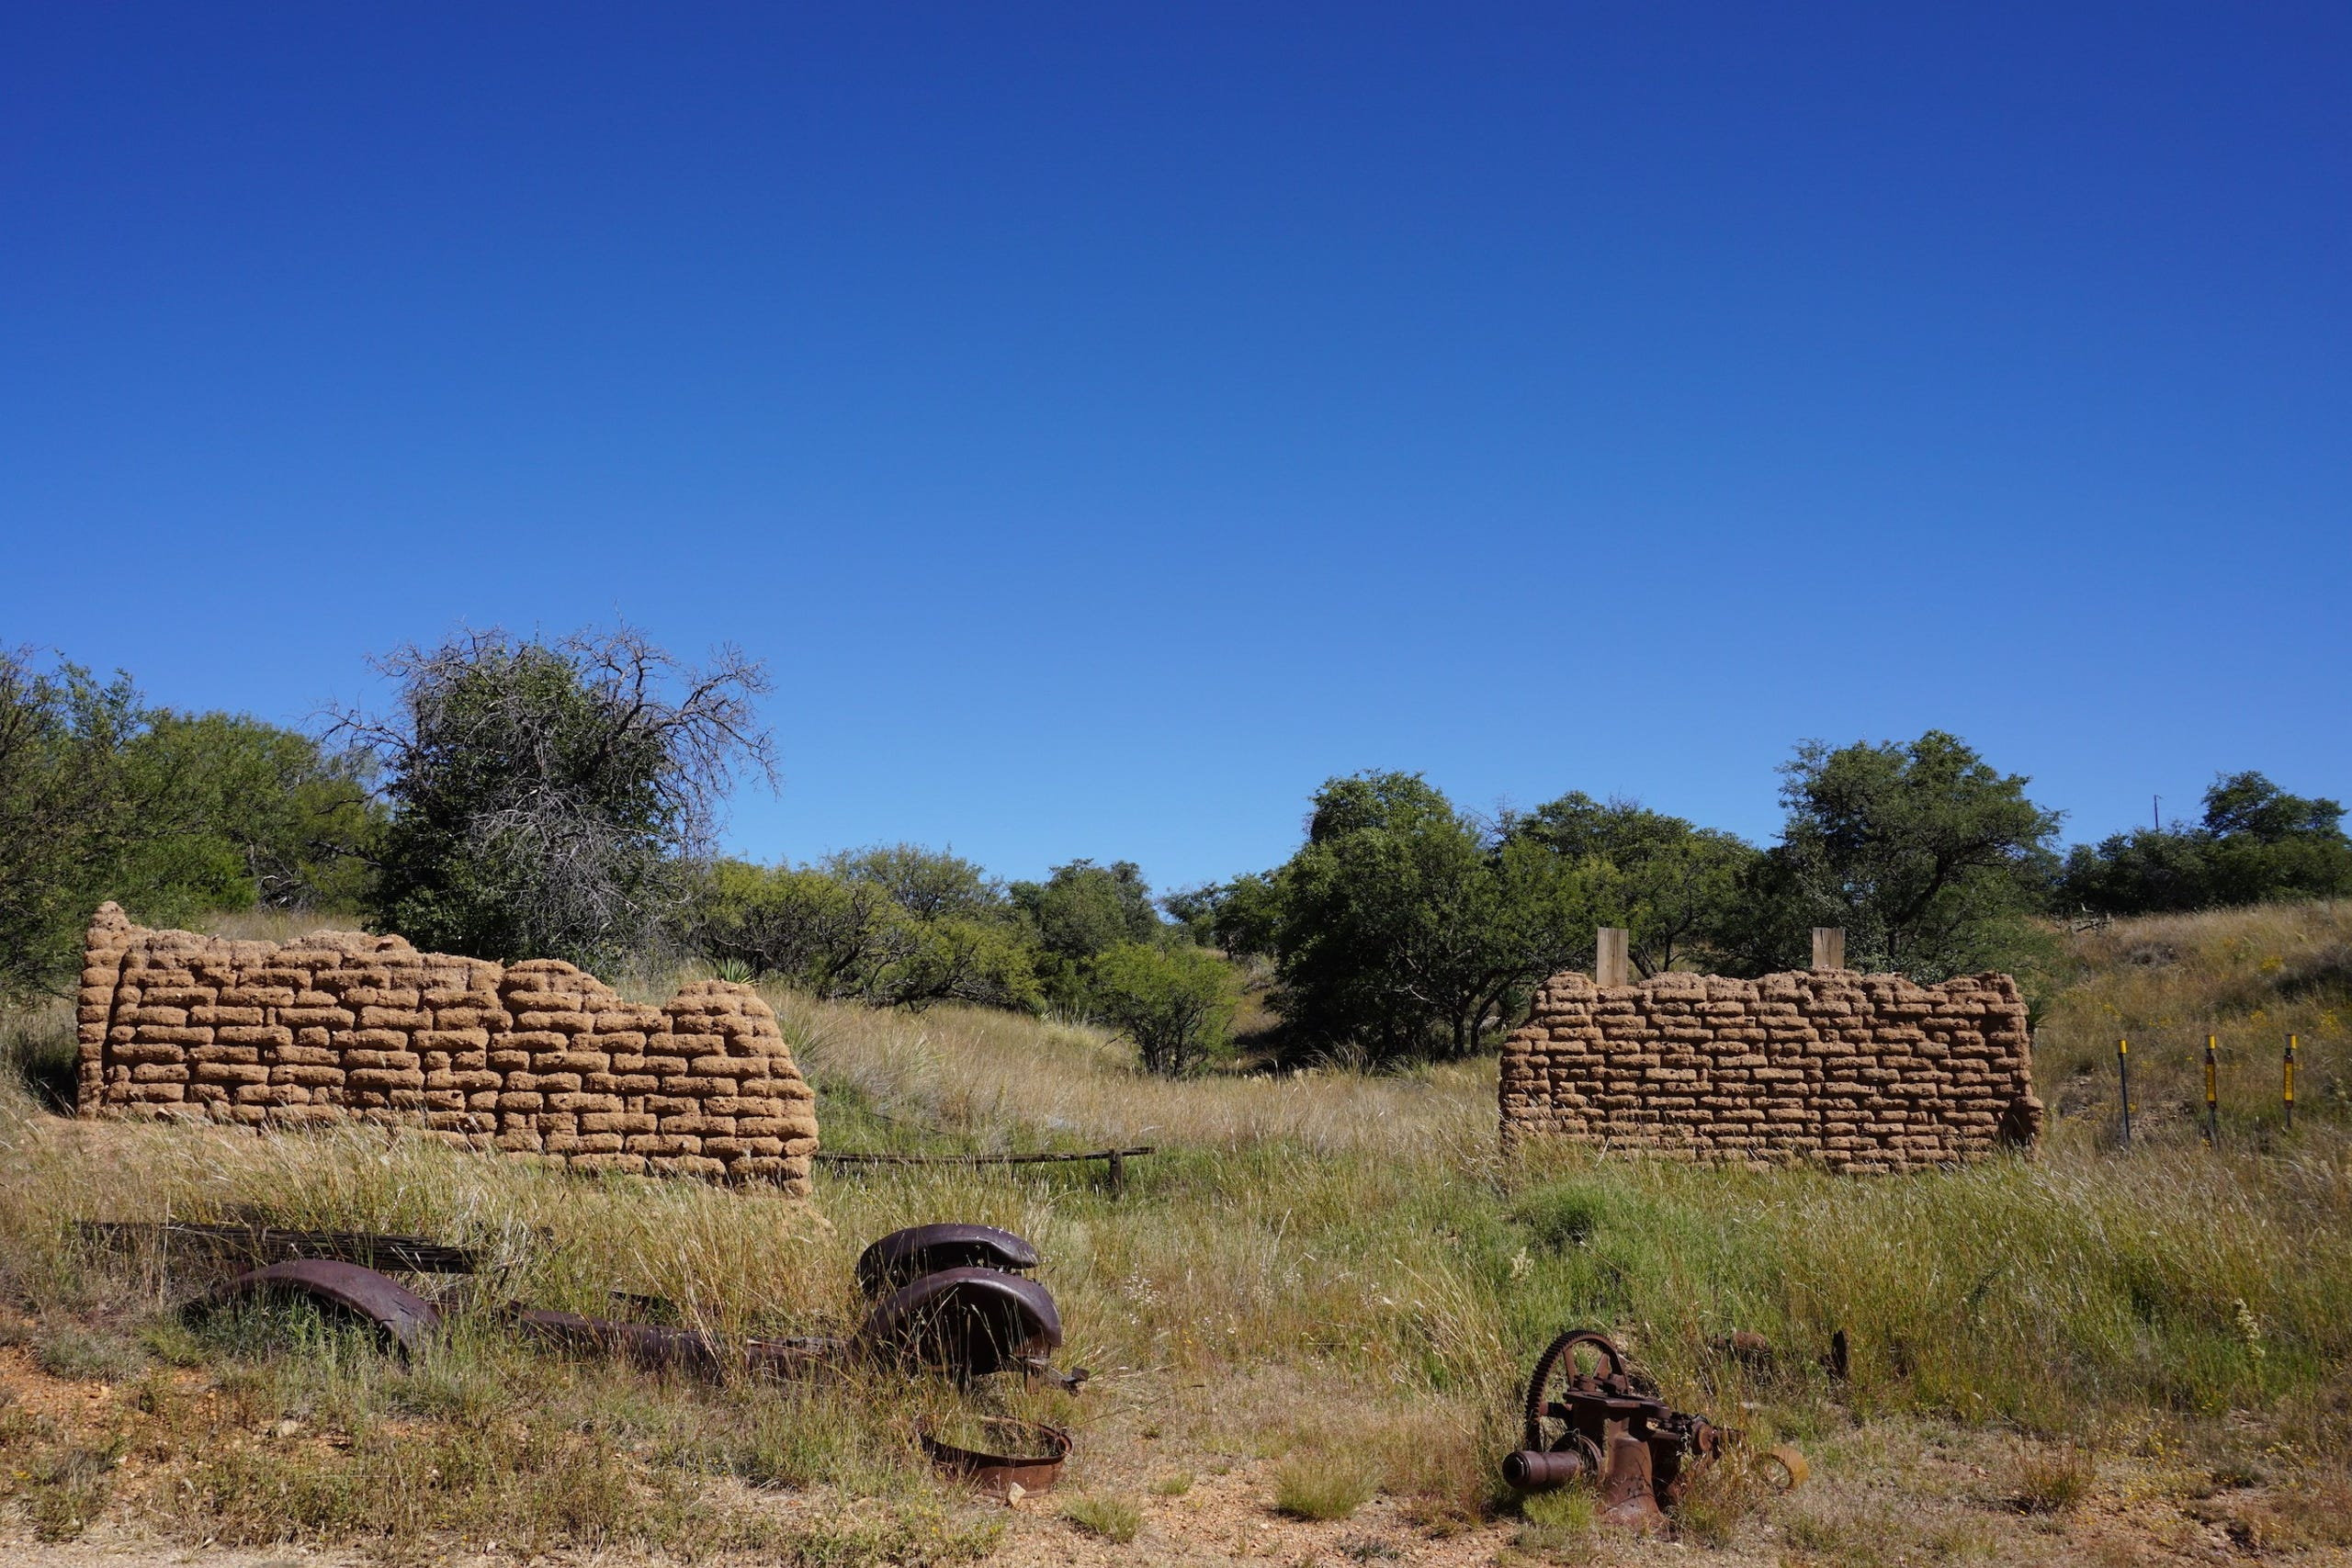 Adobe walls and rusty relics can be found through the ghost town of Kentucky Camp in southern Arizona.